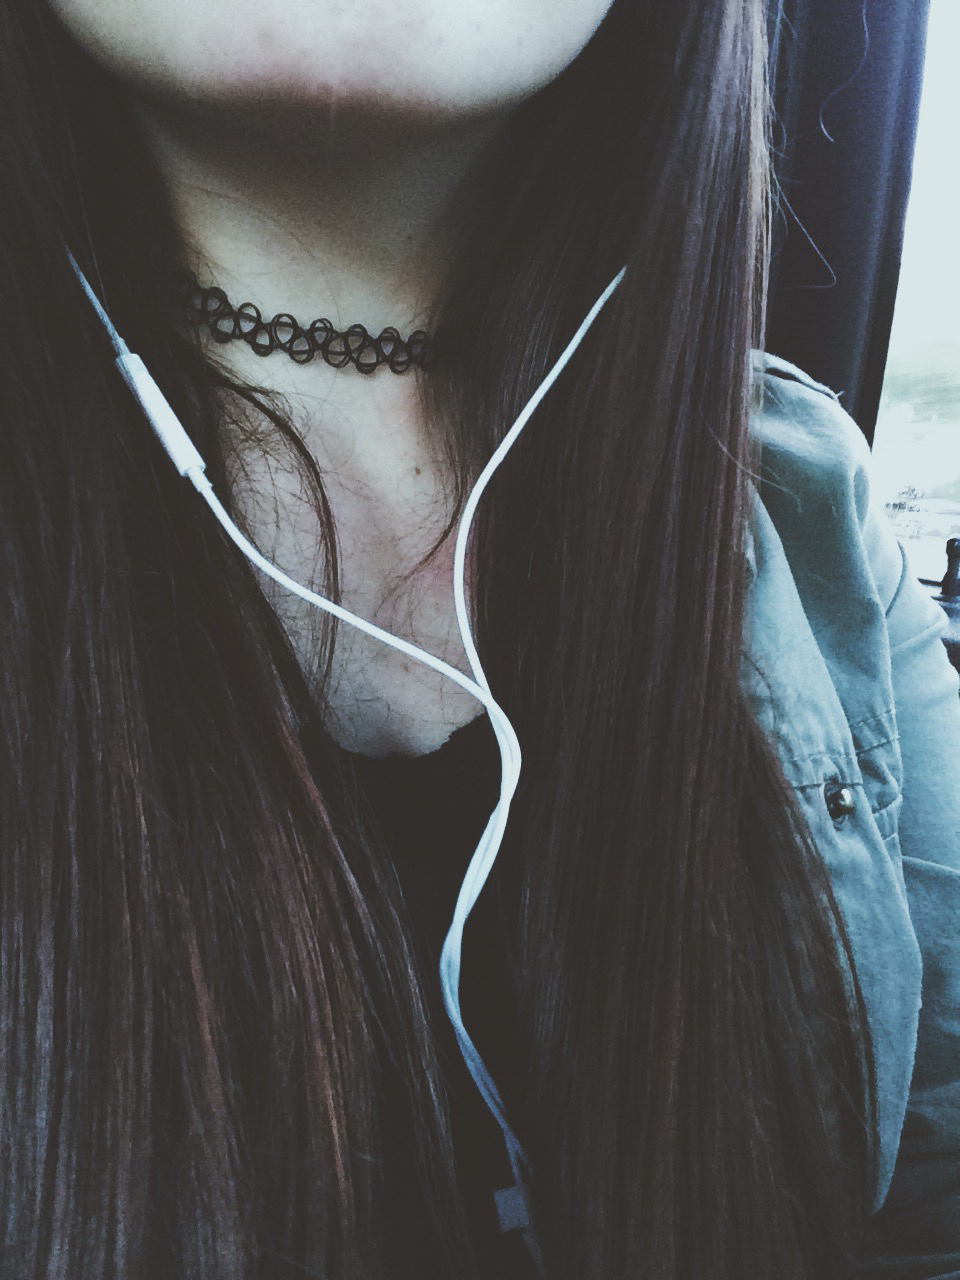 109 images about tumblr grunge on we heart it see more about grunge pale and tumblr